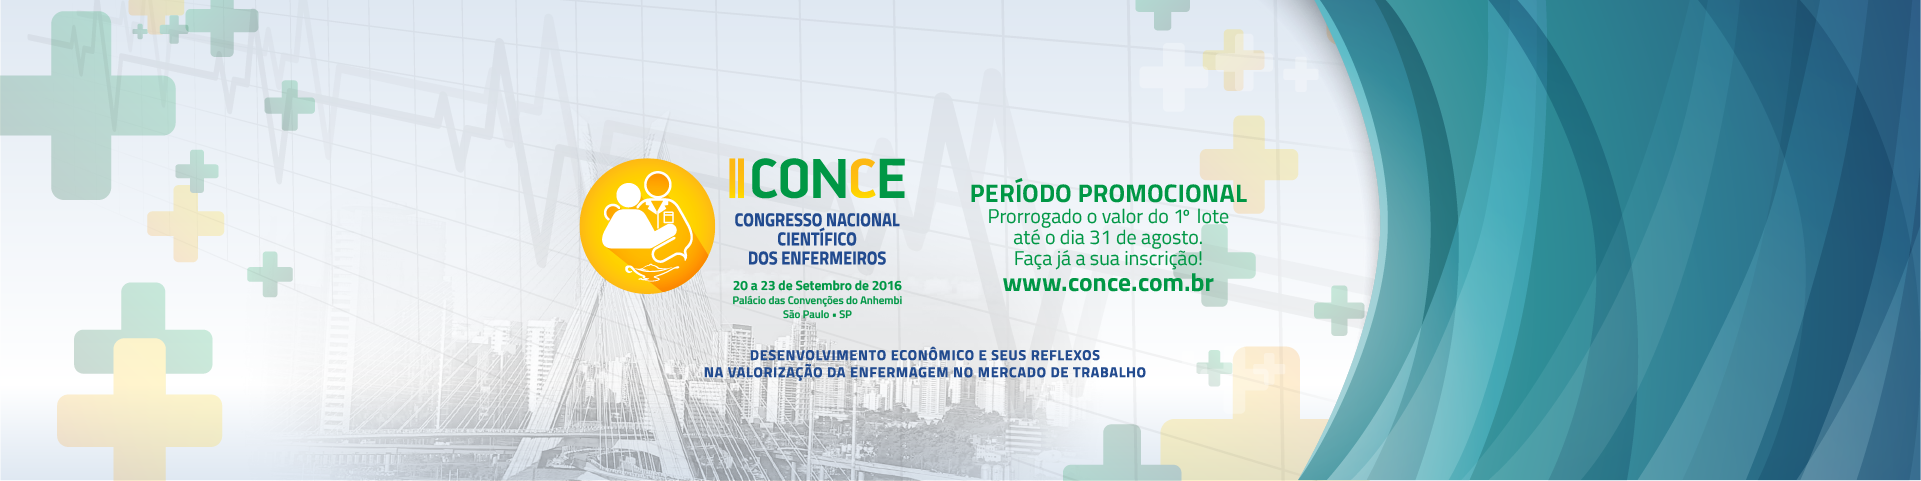 Banner_Promocional prorrogado_site_1920x480_IICONCE-01